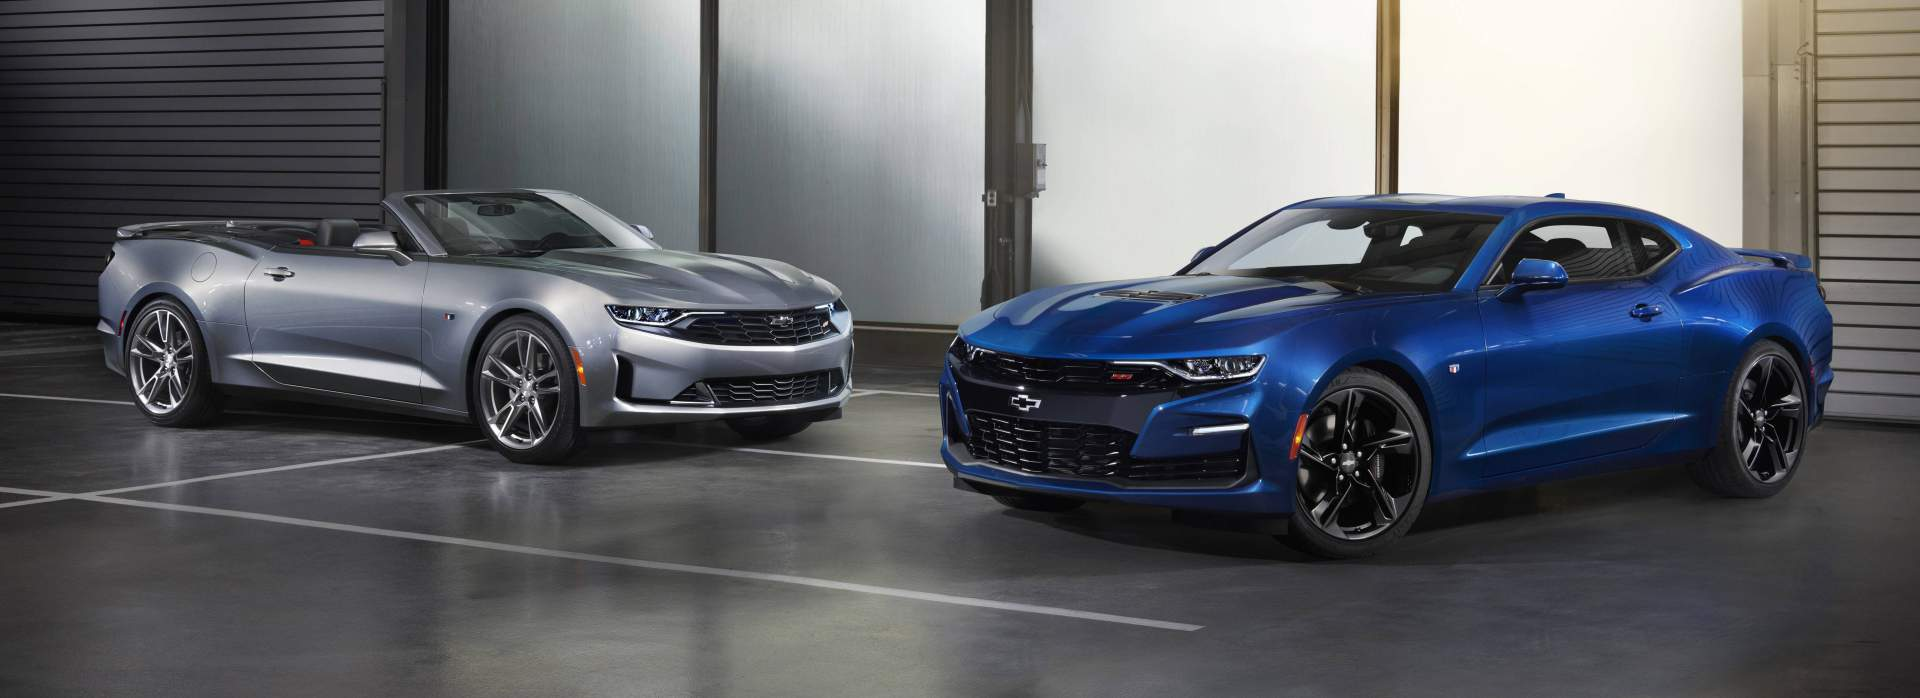 2016 Chevrolet Camaro Uk Pricing Revealed It S More